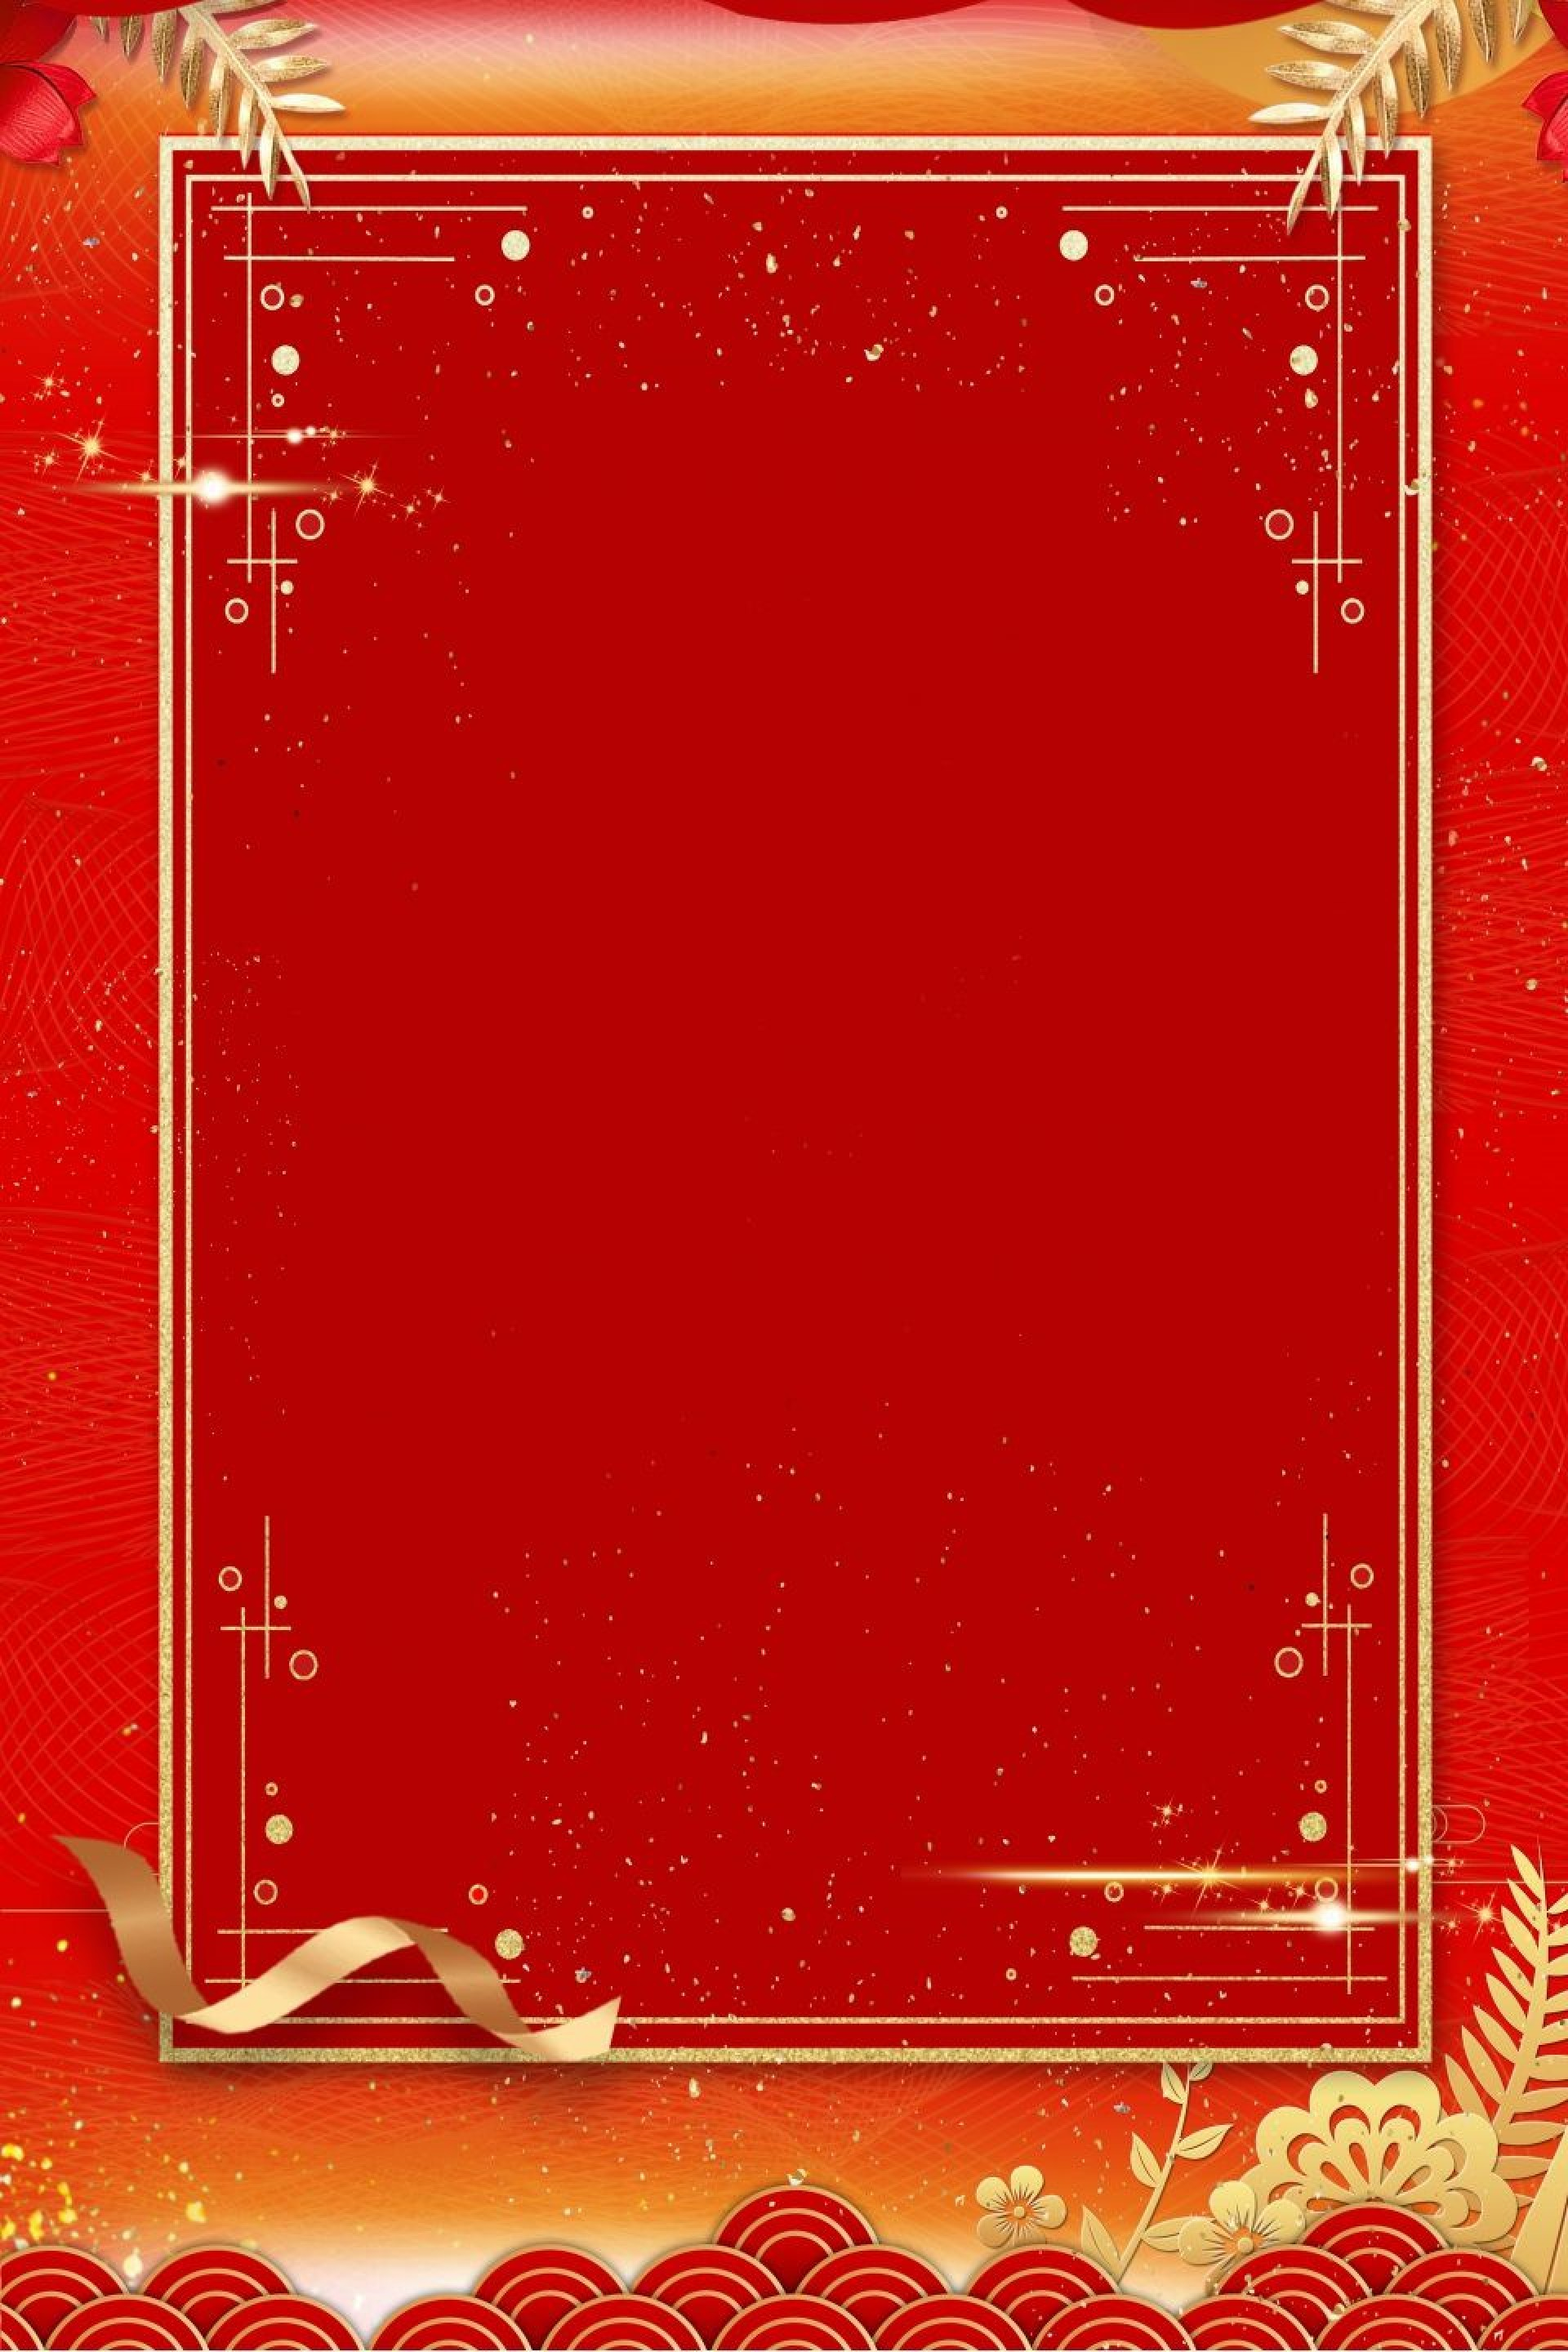 008 Awful Red Carpet Invitation Template Free Highest Quality  Download1920